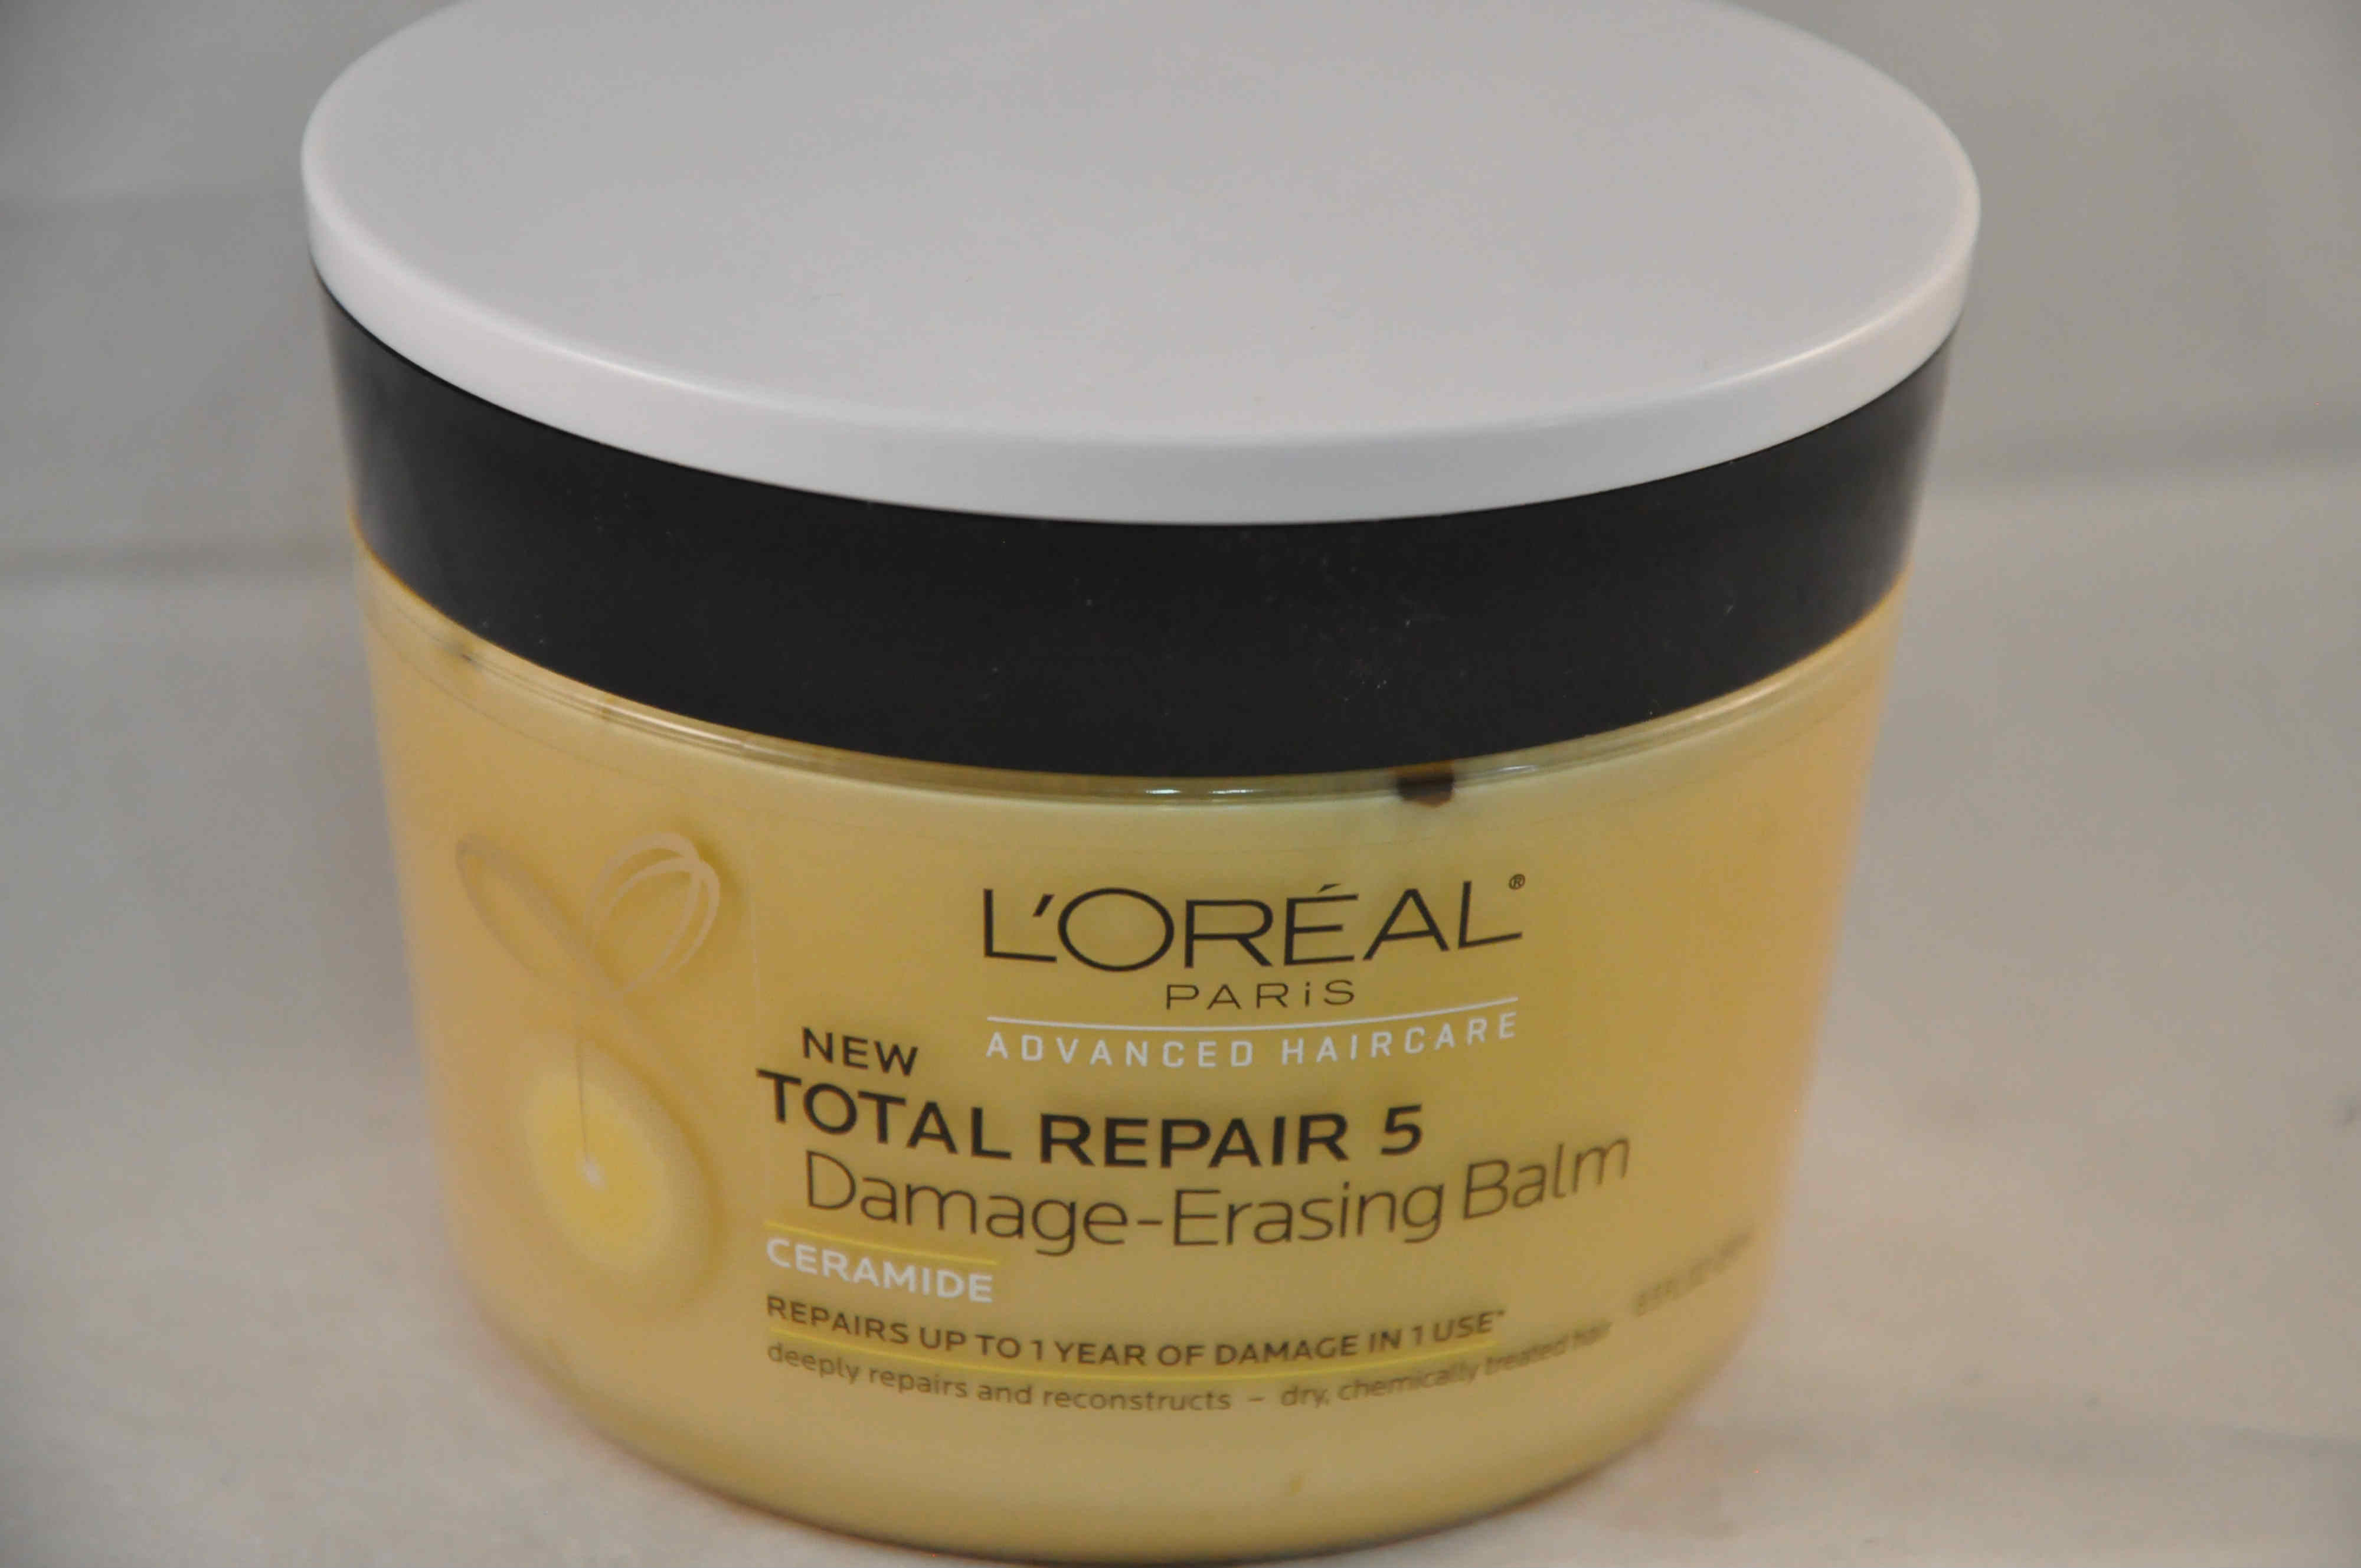 LOreal Advanced Haircare Total Repair Balm